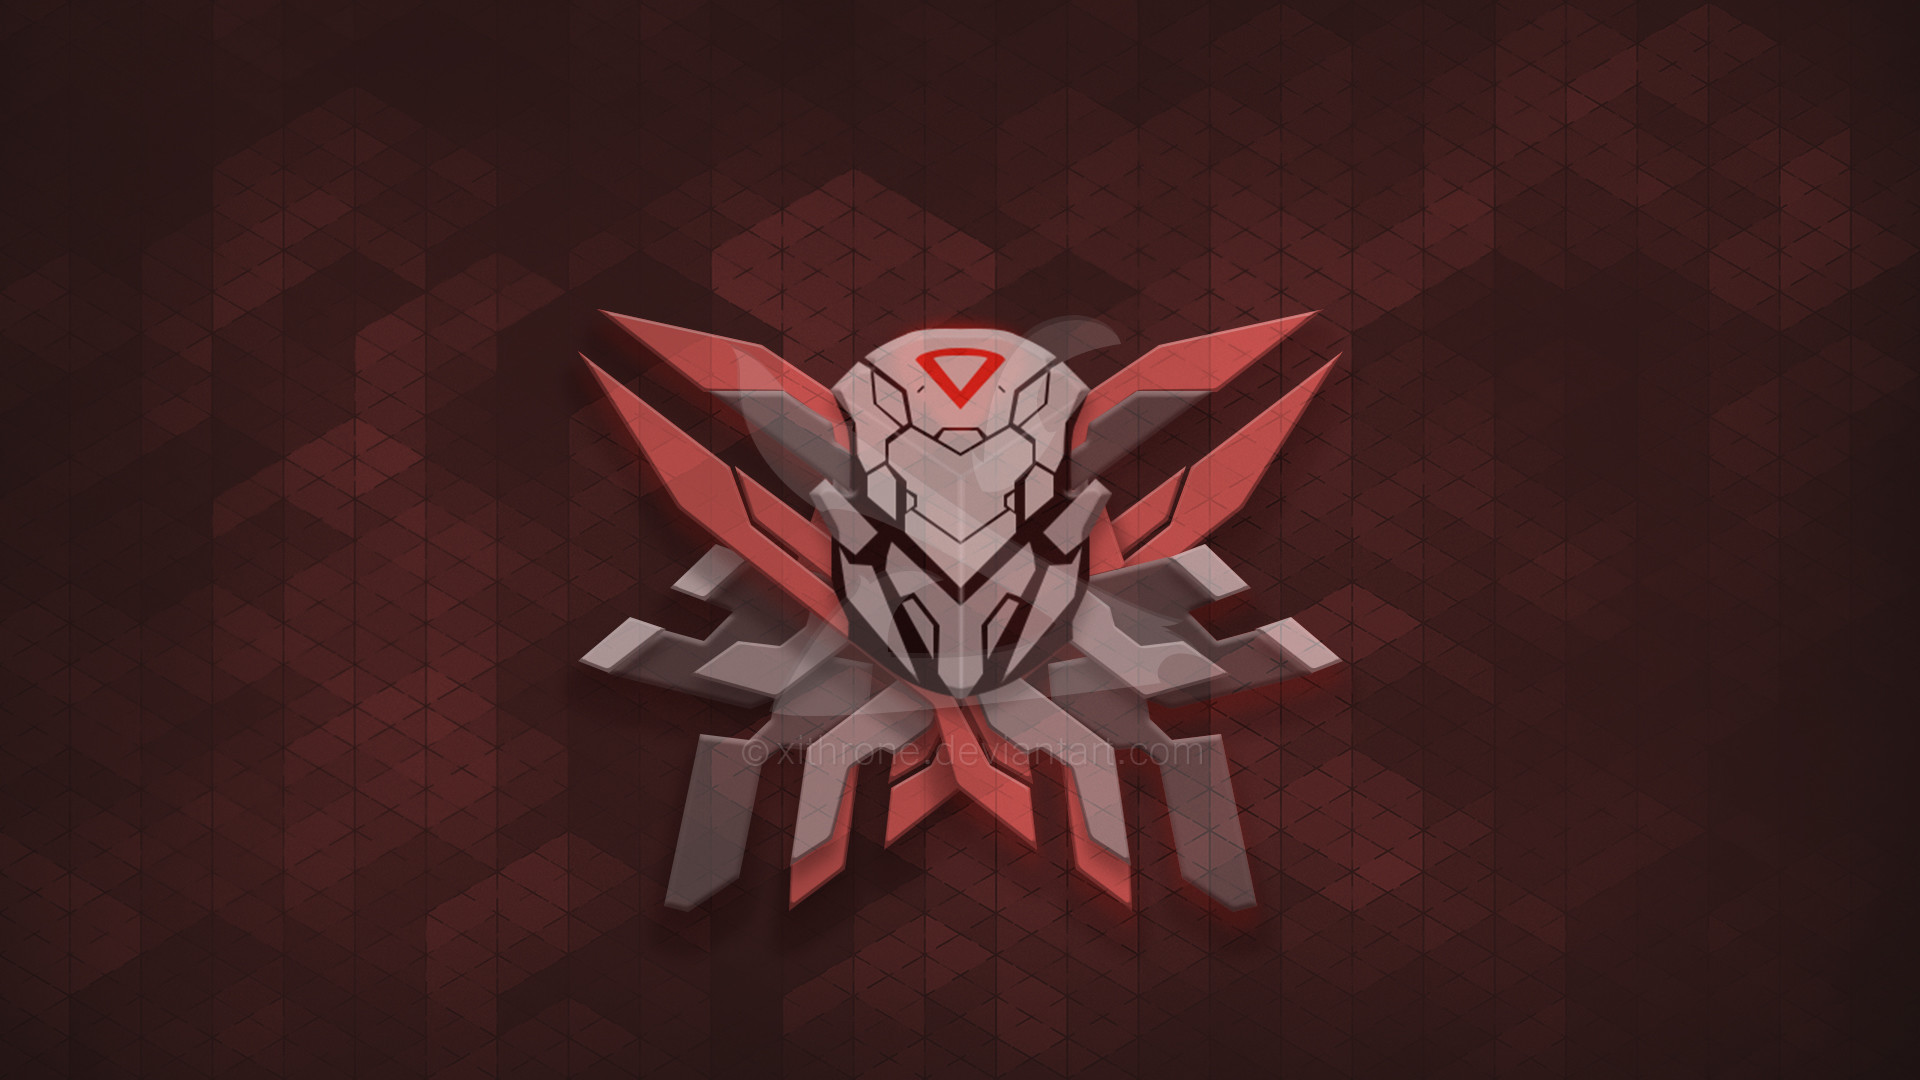 1920x1080 ... PROJECT: Zed Minimalist - League of Legends by Xithrone